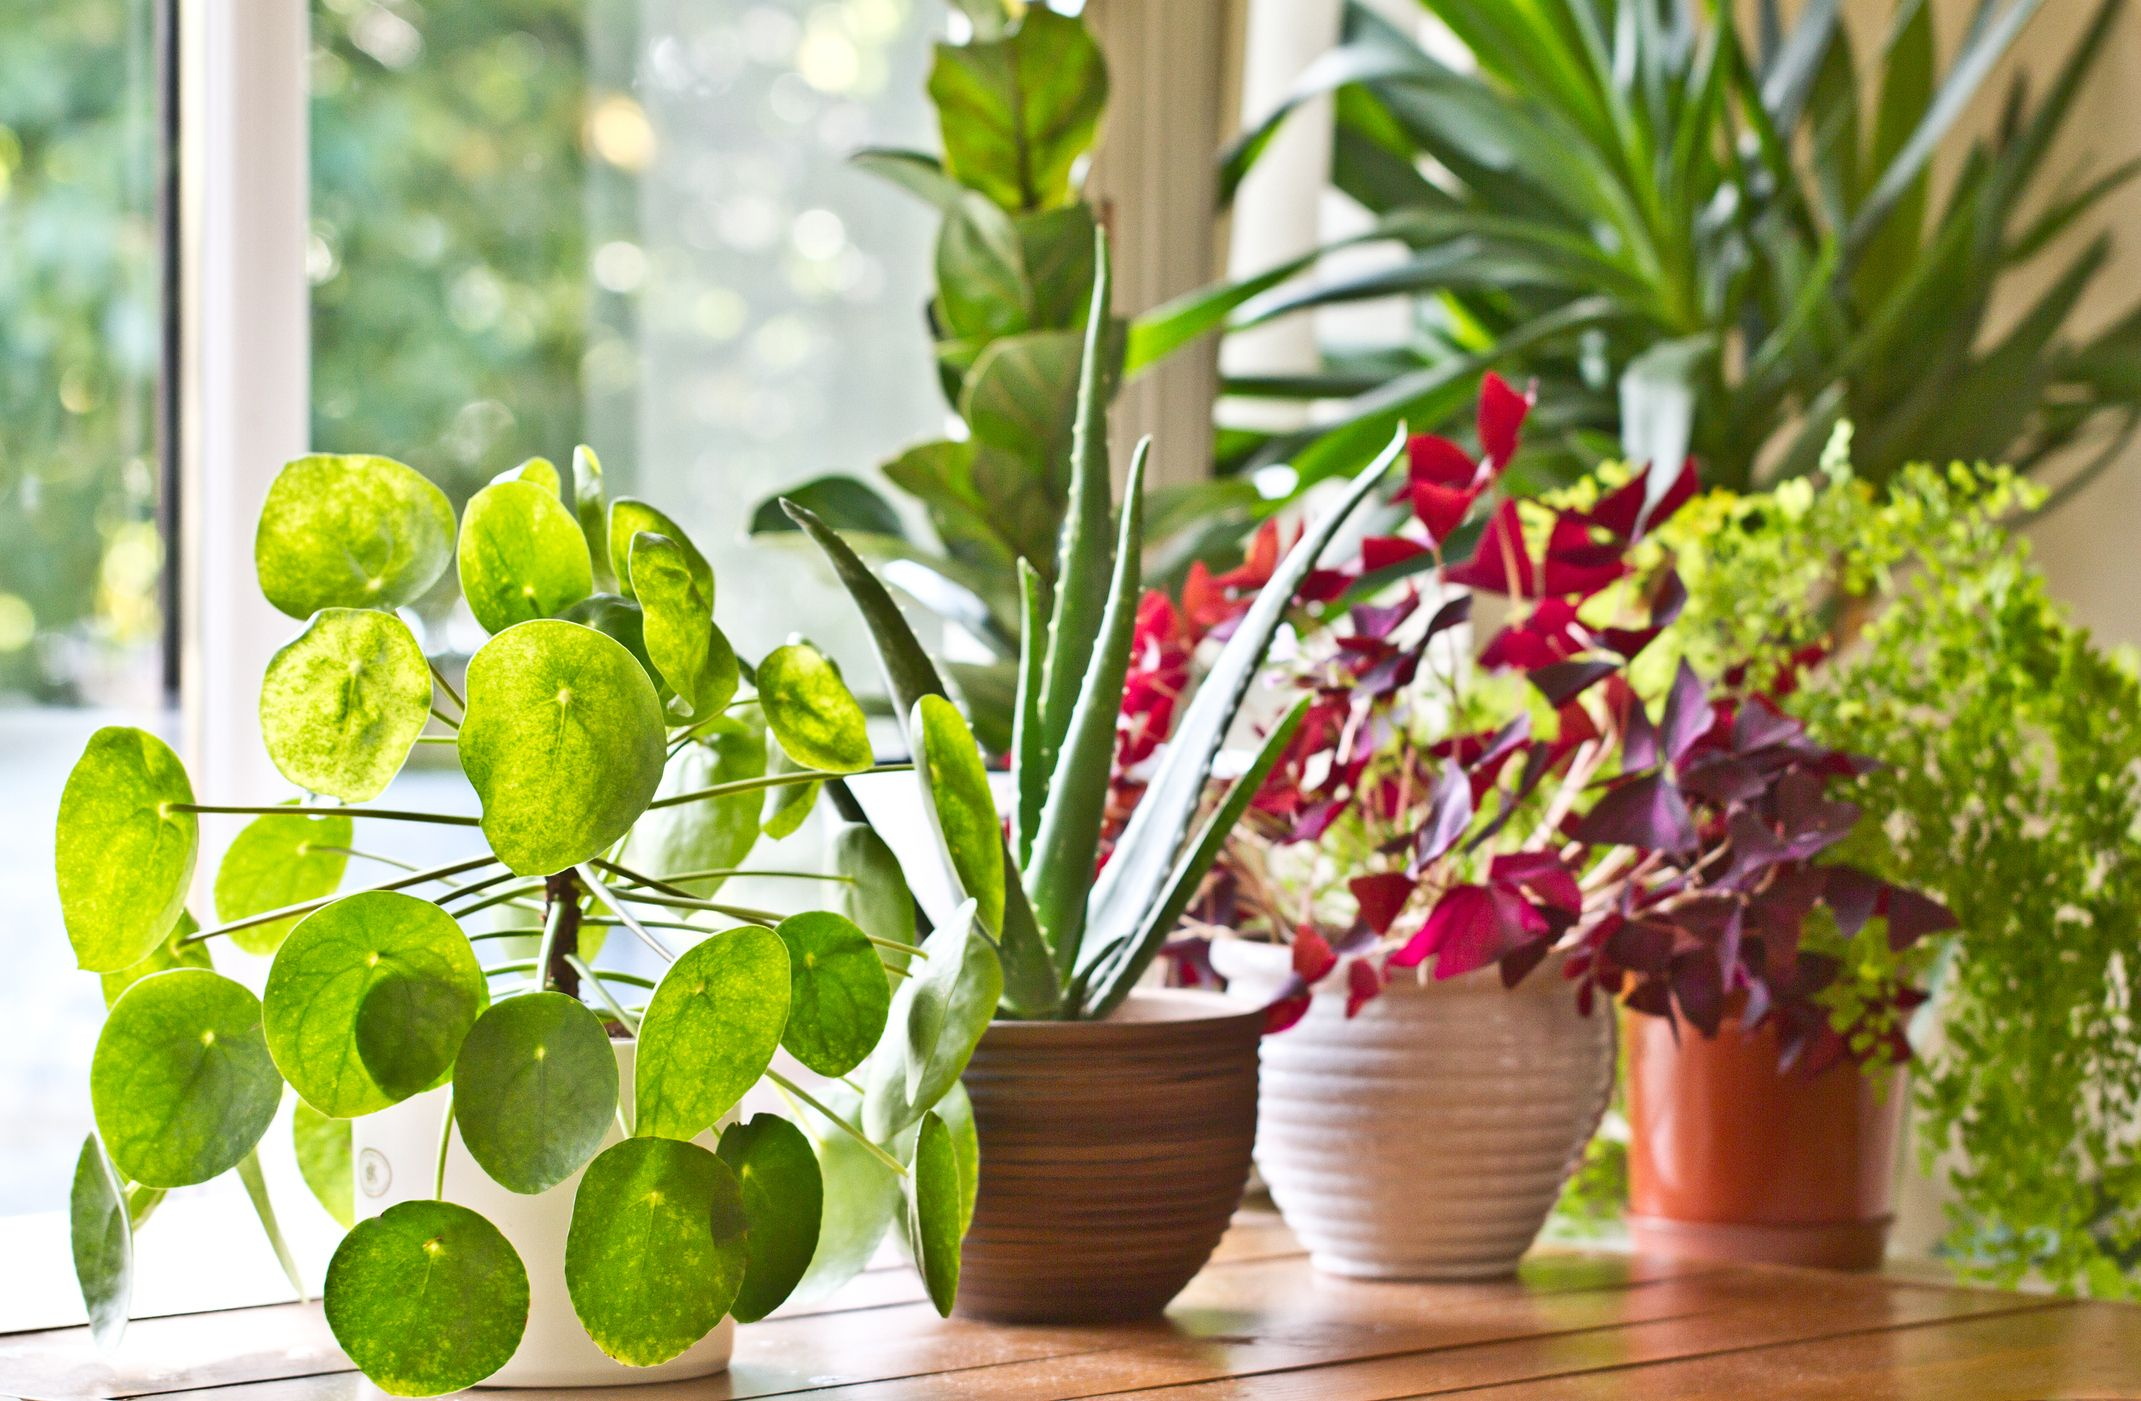 Amazing 30 Indoor Plants That Are Almost Impossible To Kill